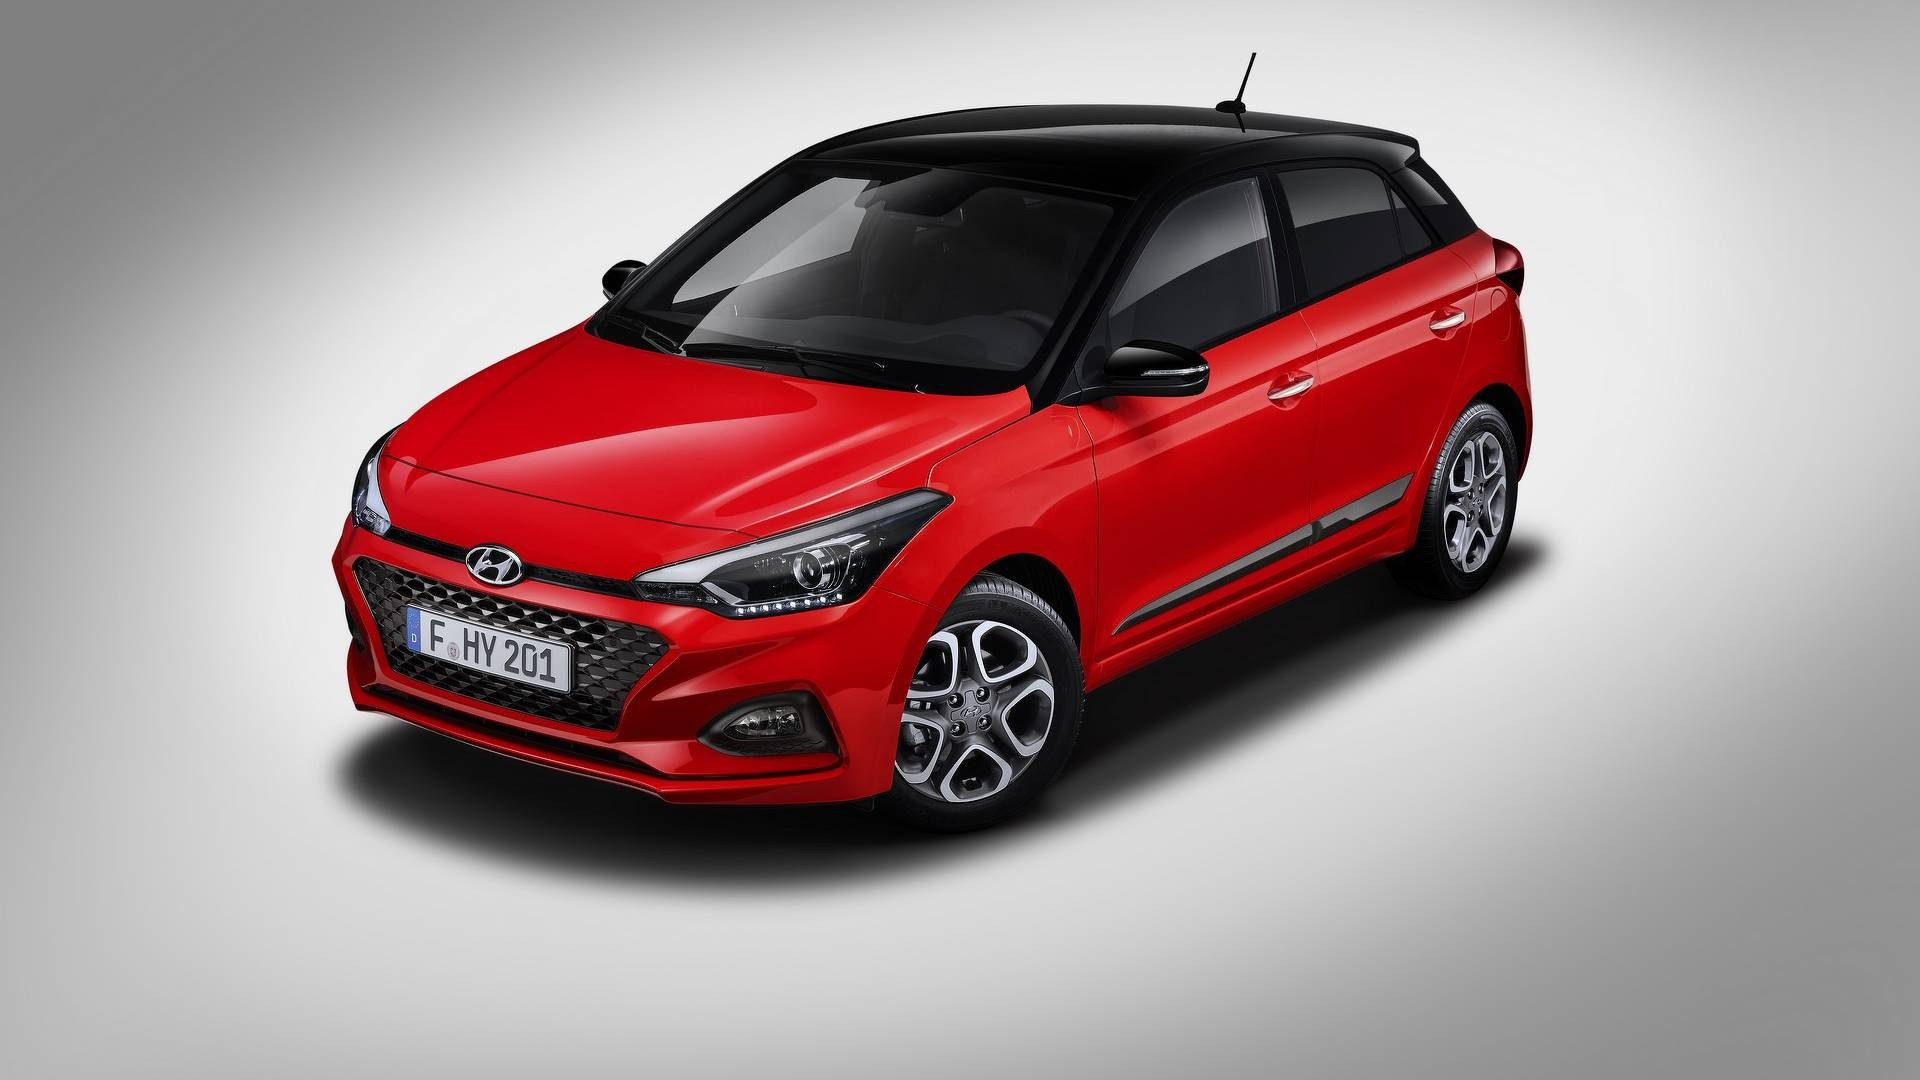 2018 hyundai i20 facelift looks mundane gets dual clutch